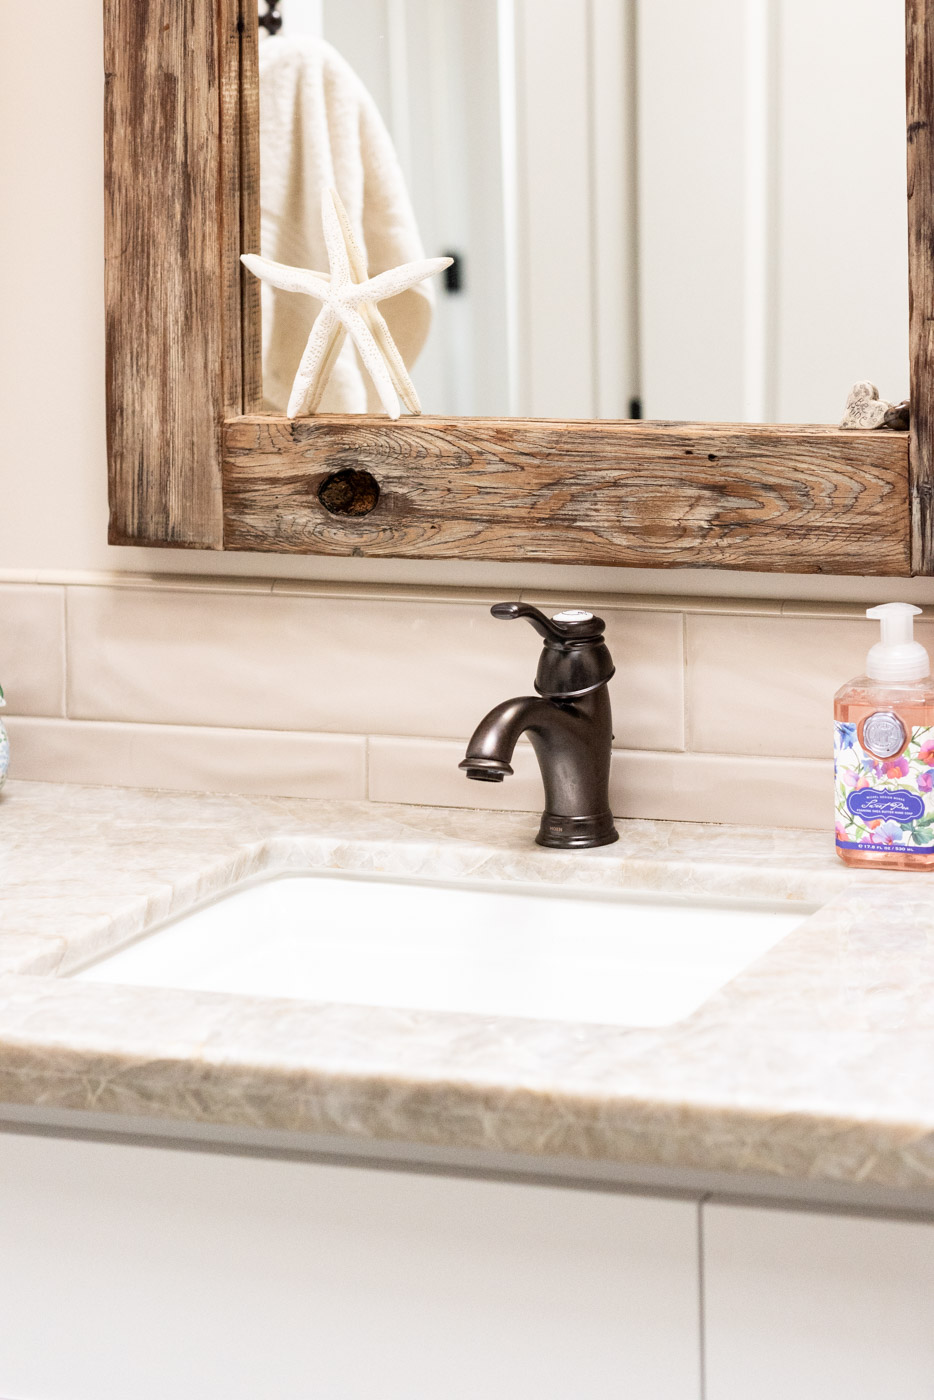 Coastal Craftsman home with custom white painted bathroom vanity cabinets and stone counter tops